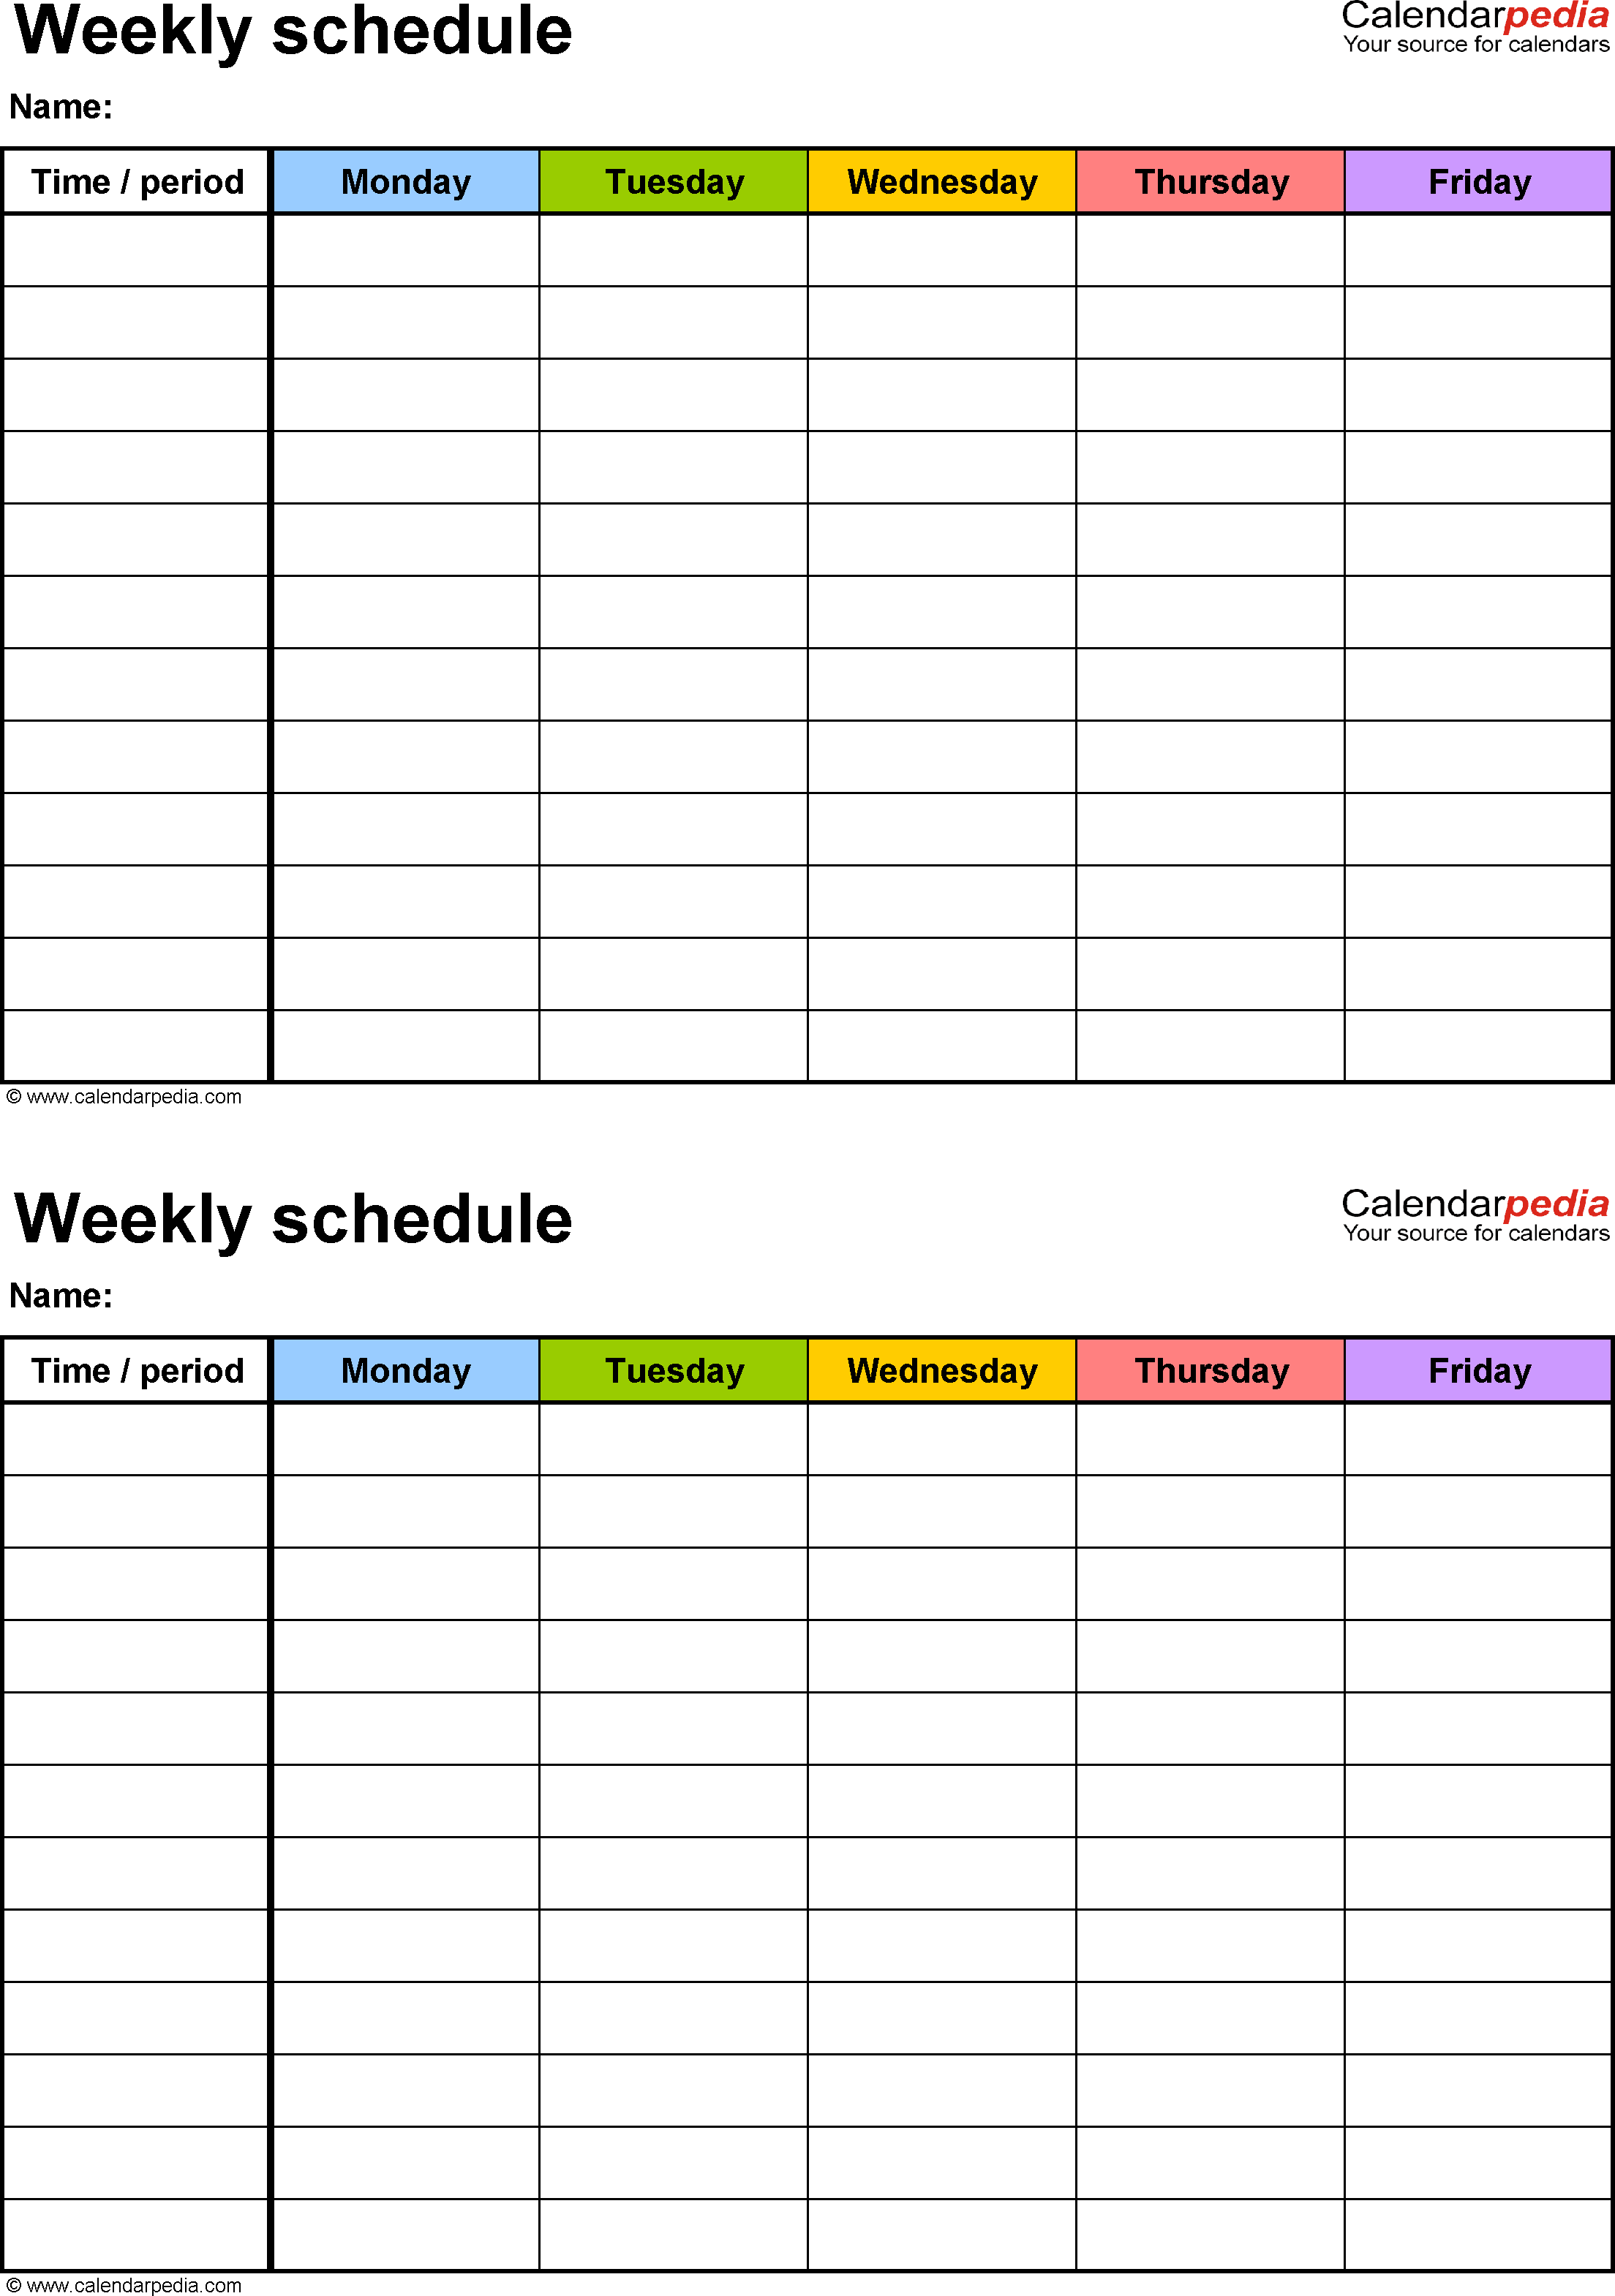 school schedule printables Dorit.mercatodos.co